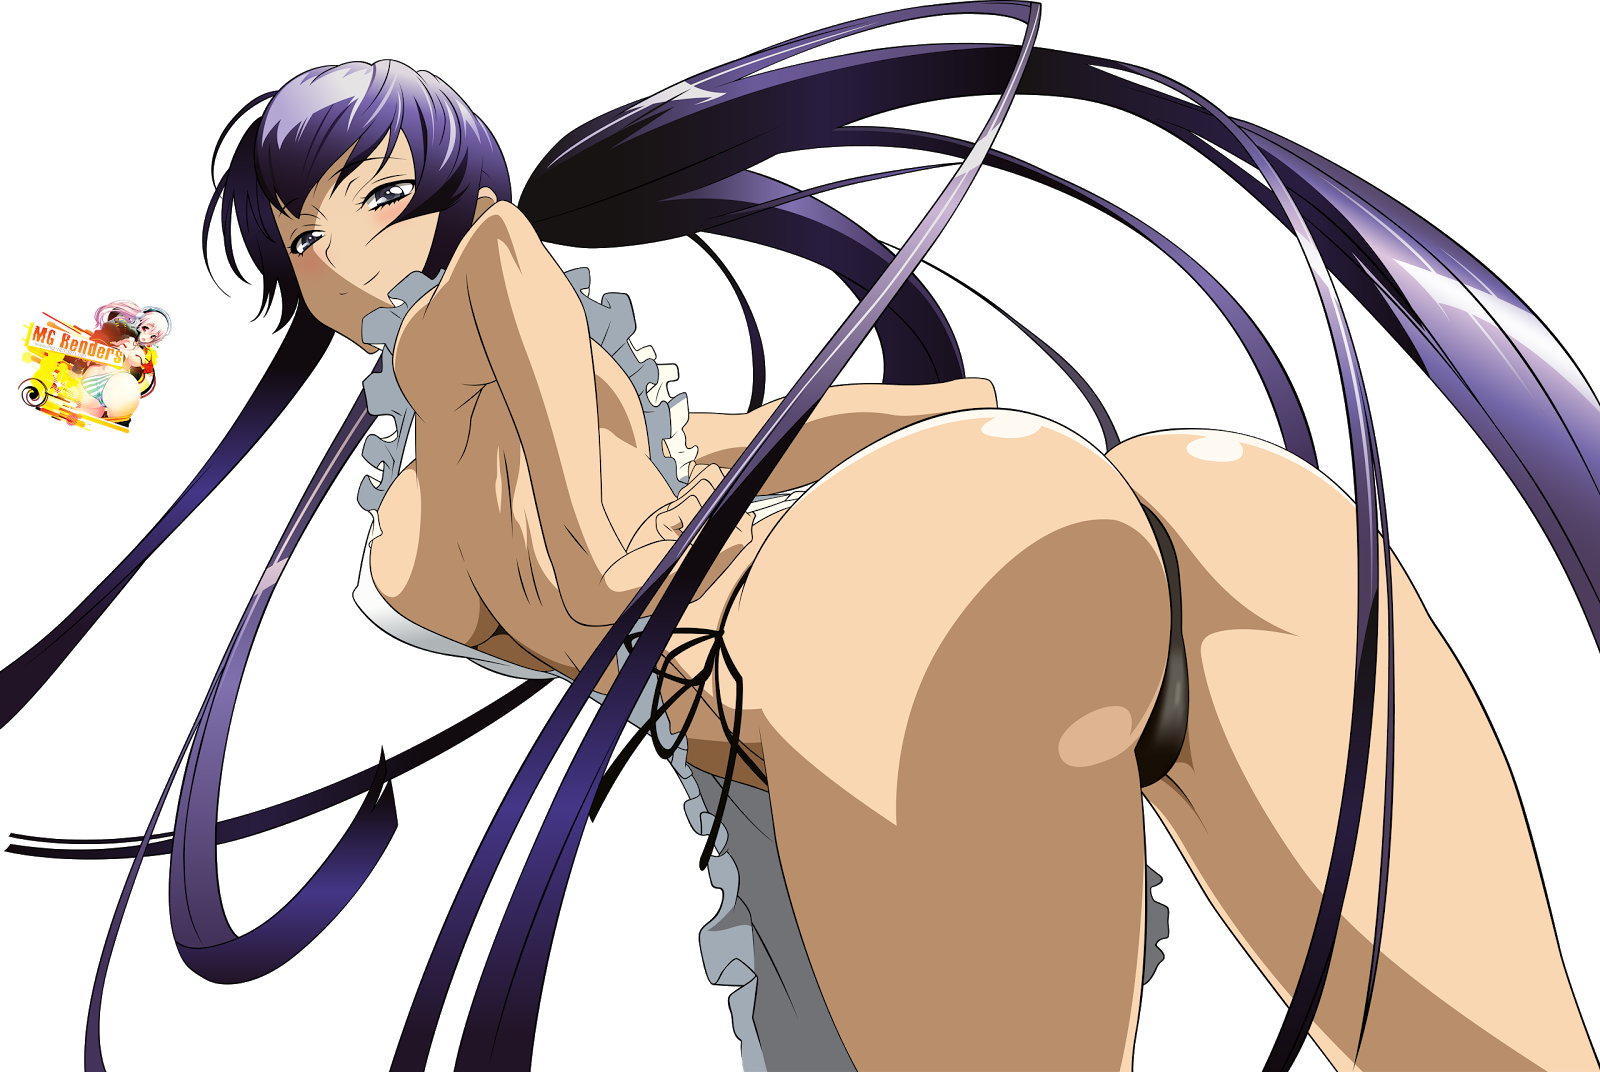 Tags: Anime, Render,  Busujima Saeko,  Hadaka Apron,  Highschool Of The Dead,  PNG, Image, Picture